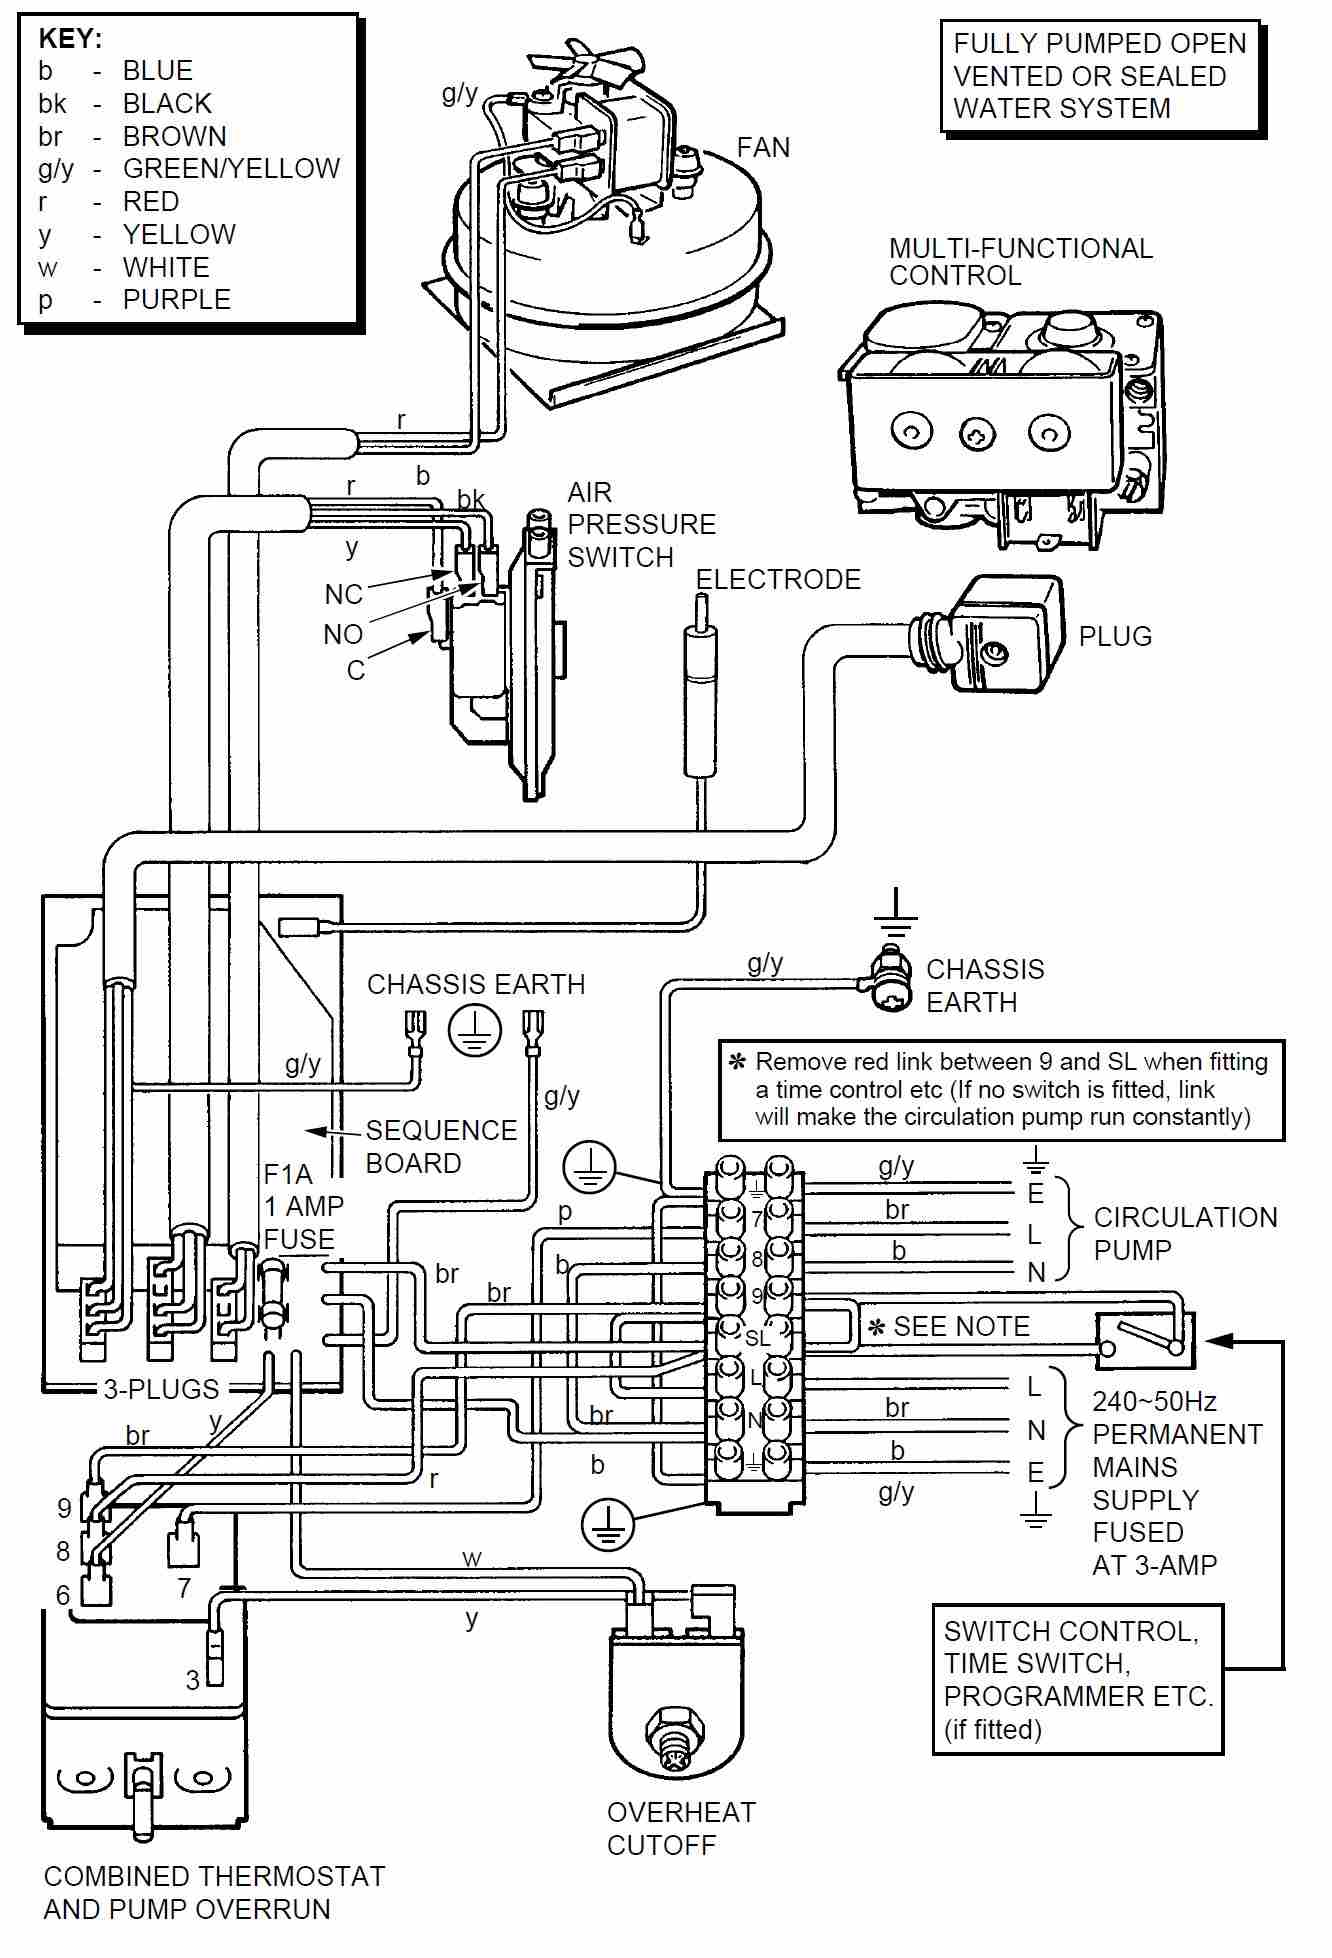 s plan wiring diagram with pump overrun   39 wiring